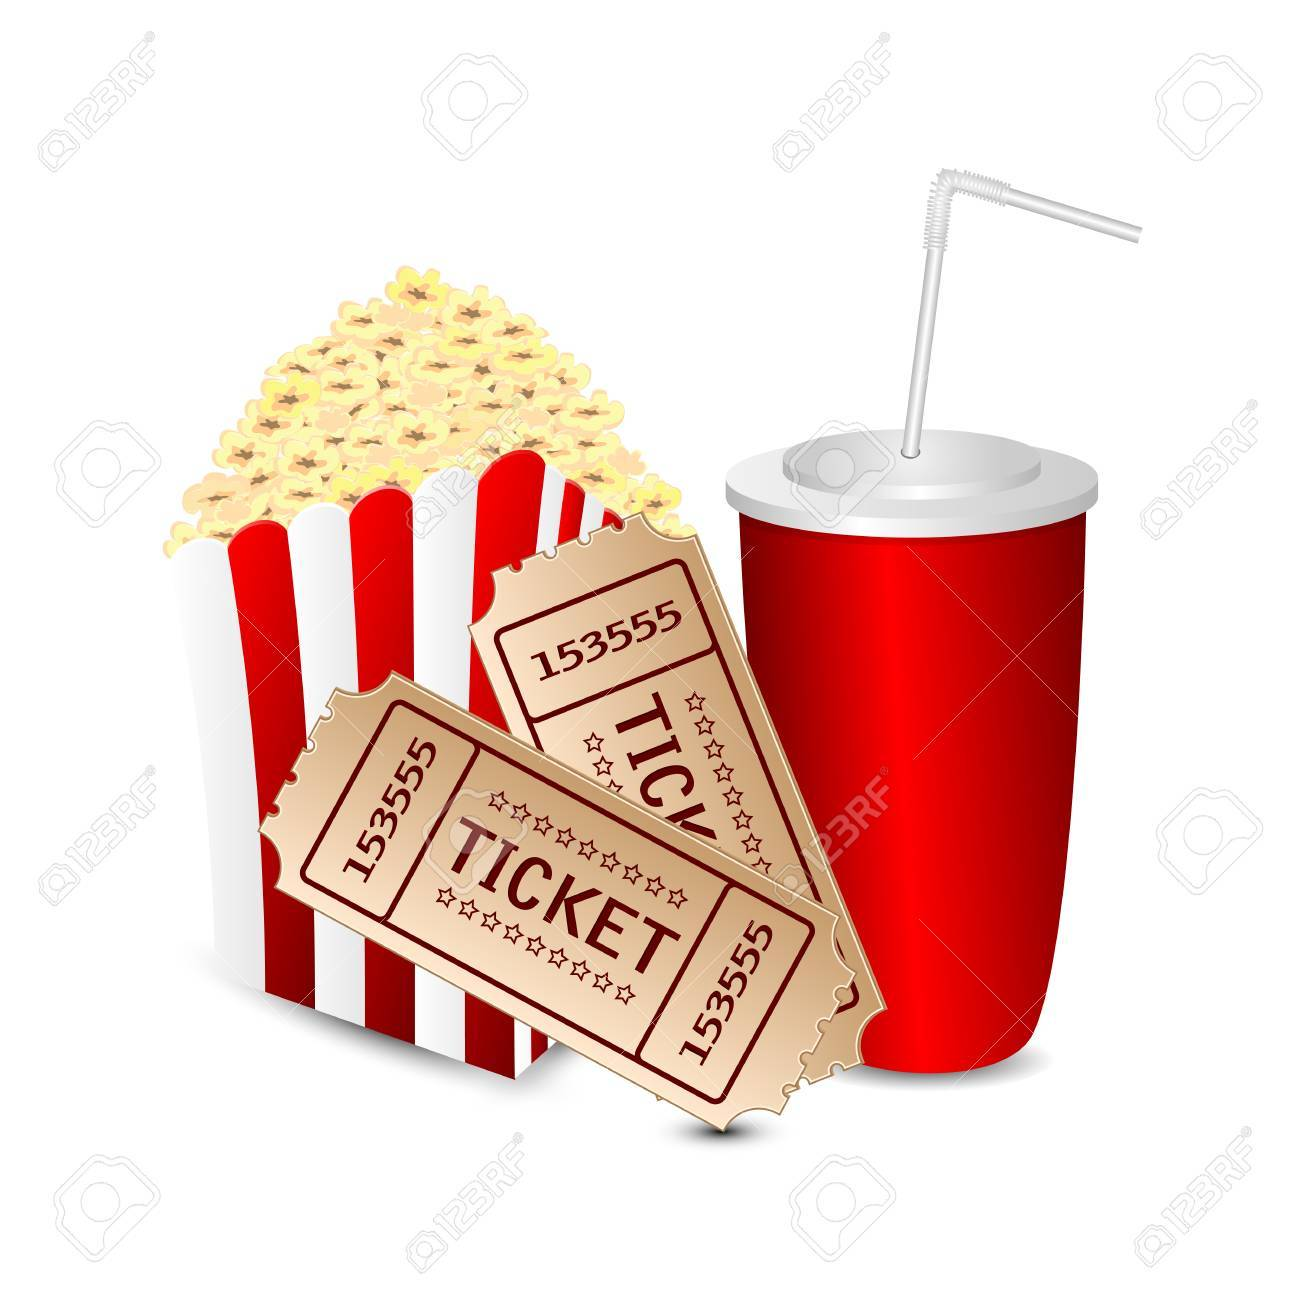 Movie and popcorn clipart svg library stock Movie tickets and popcorn clipart 3 » Clipart Portal svg library stock